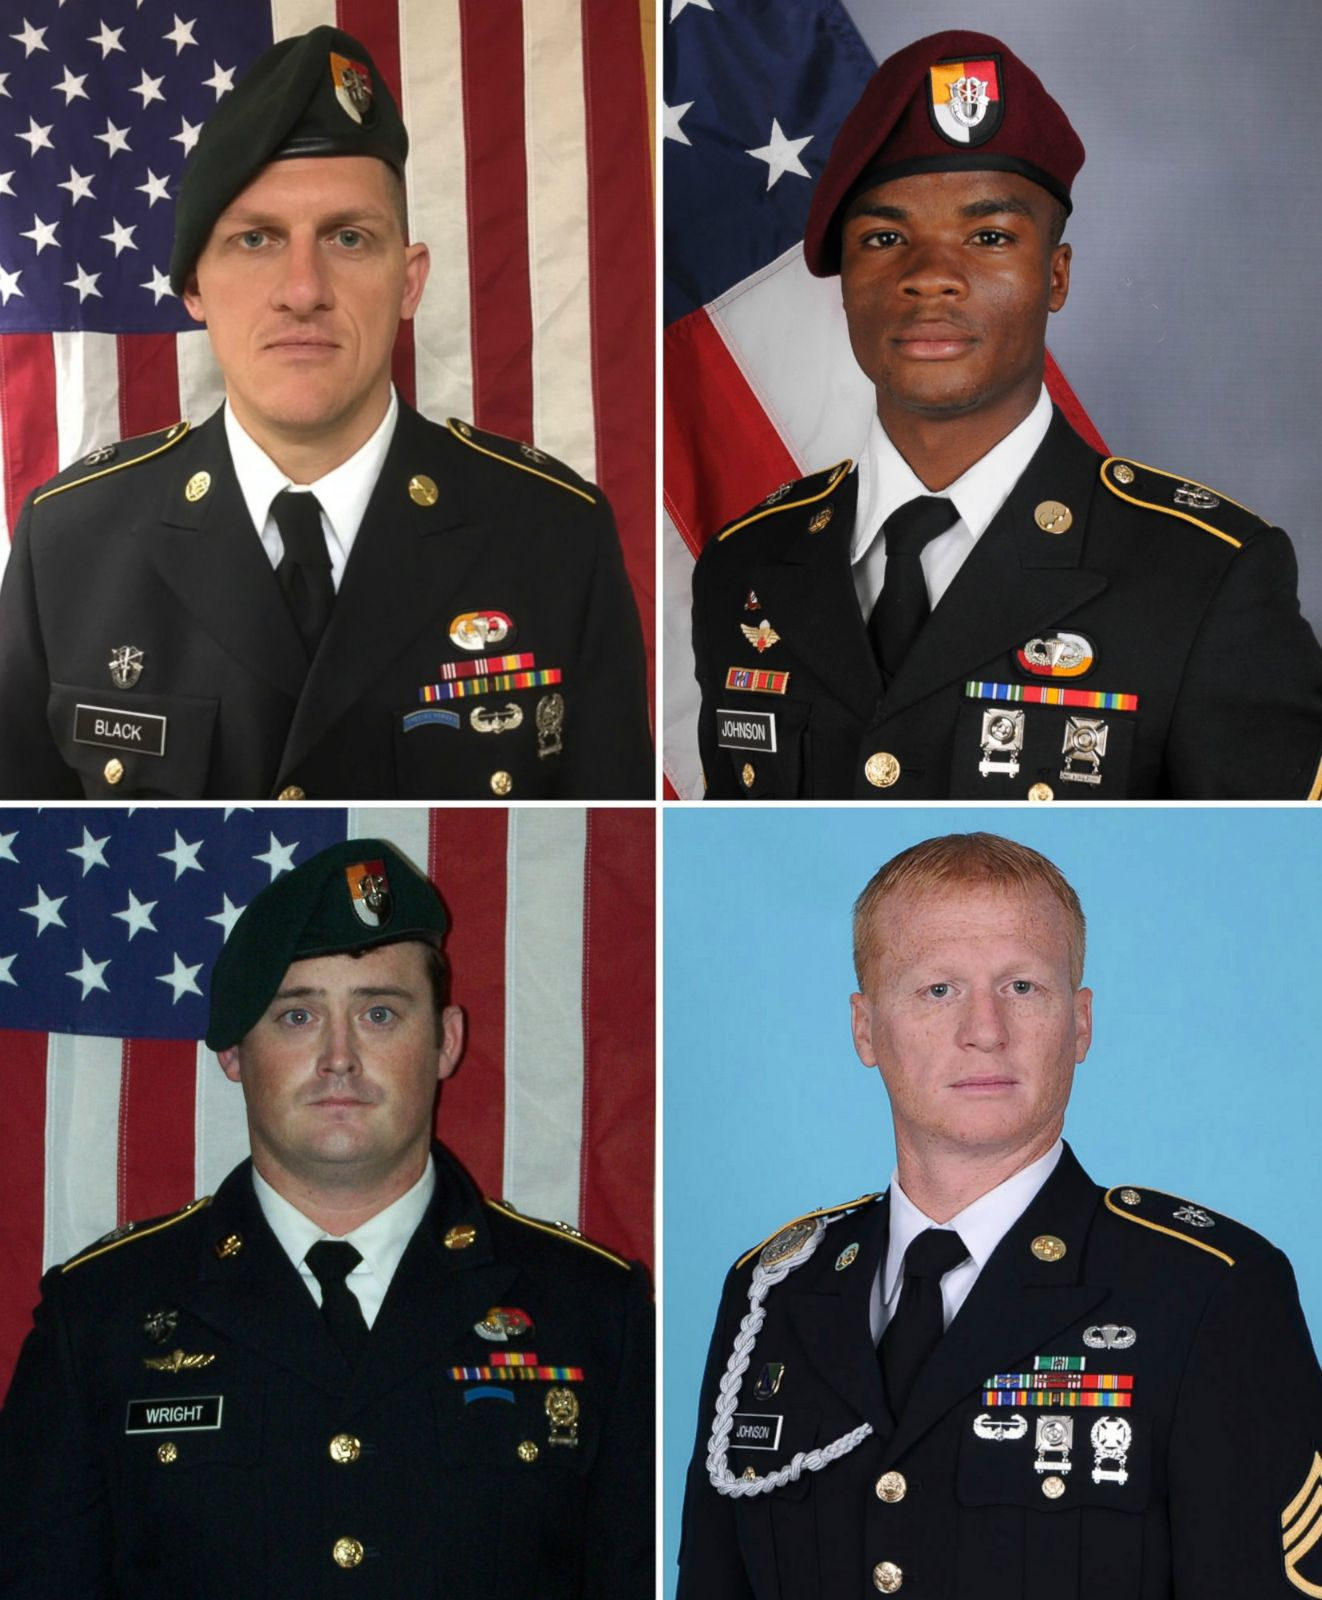 US soldiers killed in Niger were outgunned, 'left behind' in hunt